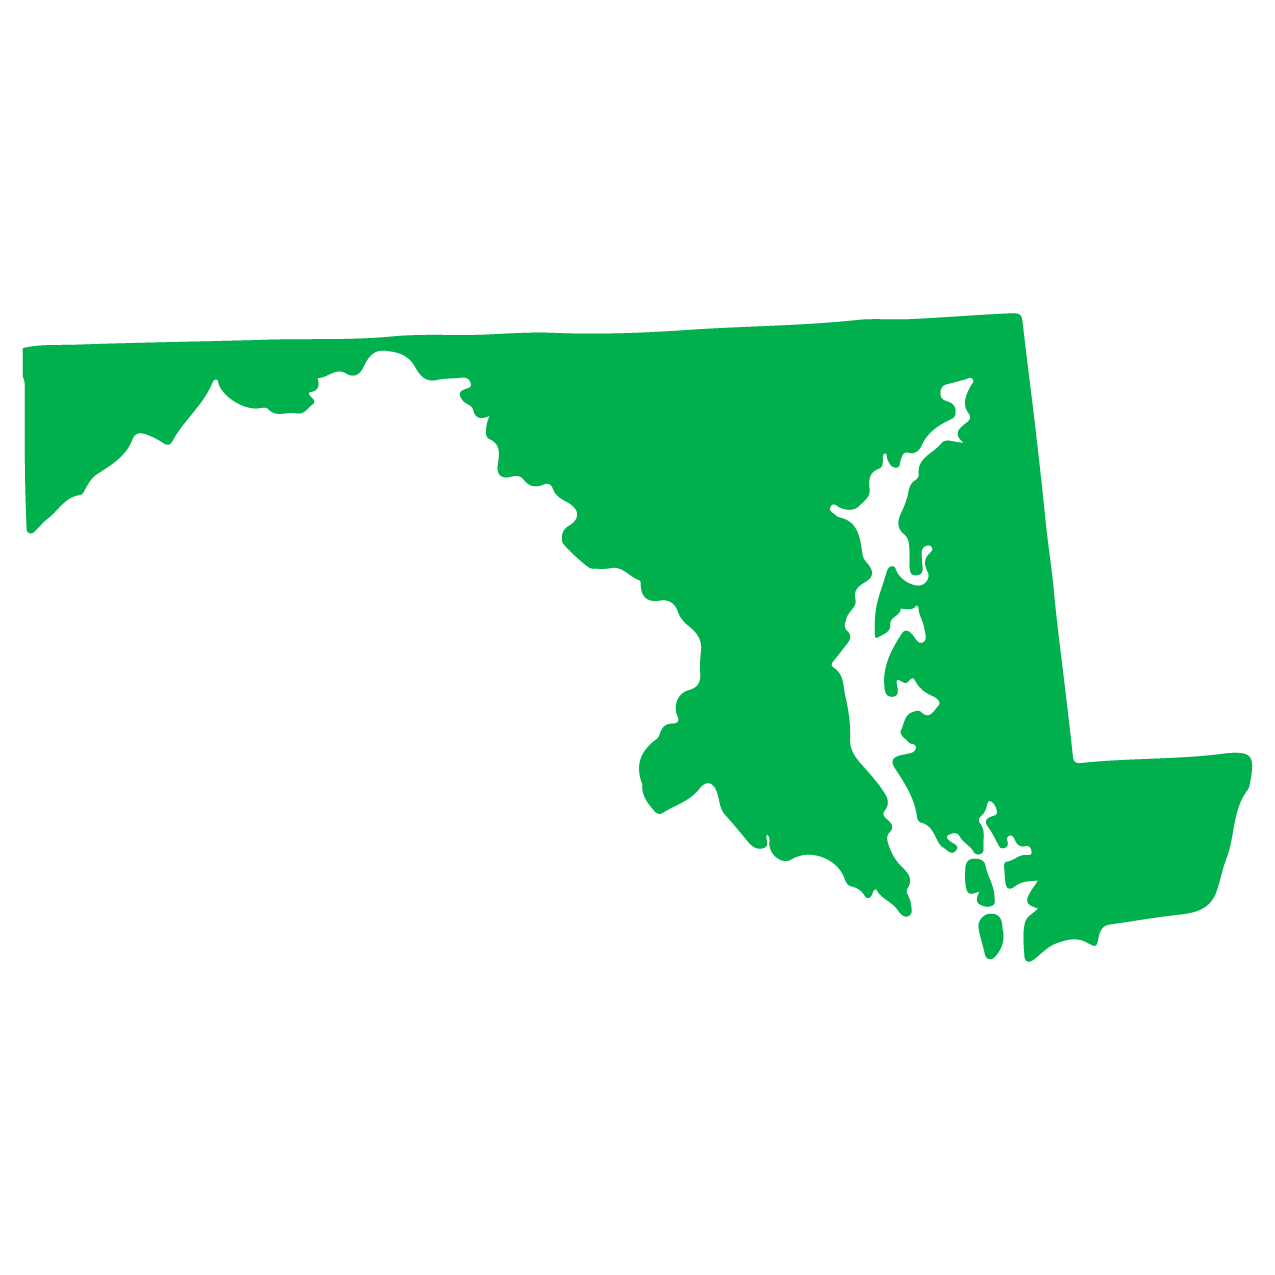 States_Maryland.png